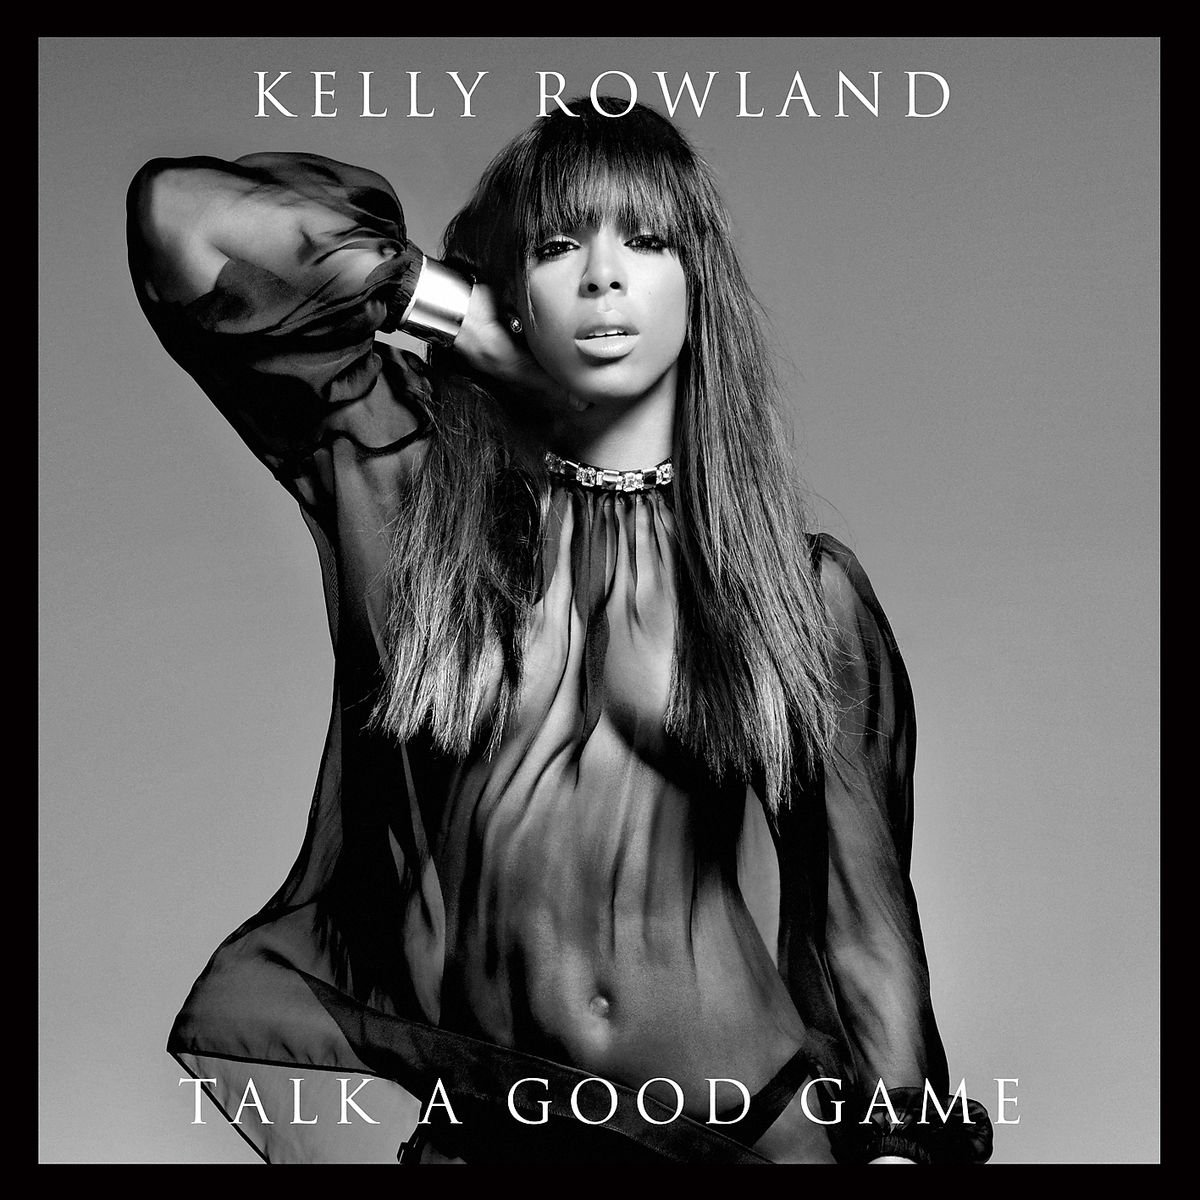 Kelly Rowland - Talk A Good Game album review